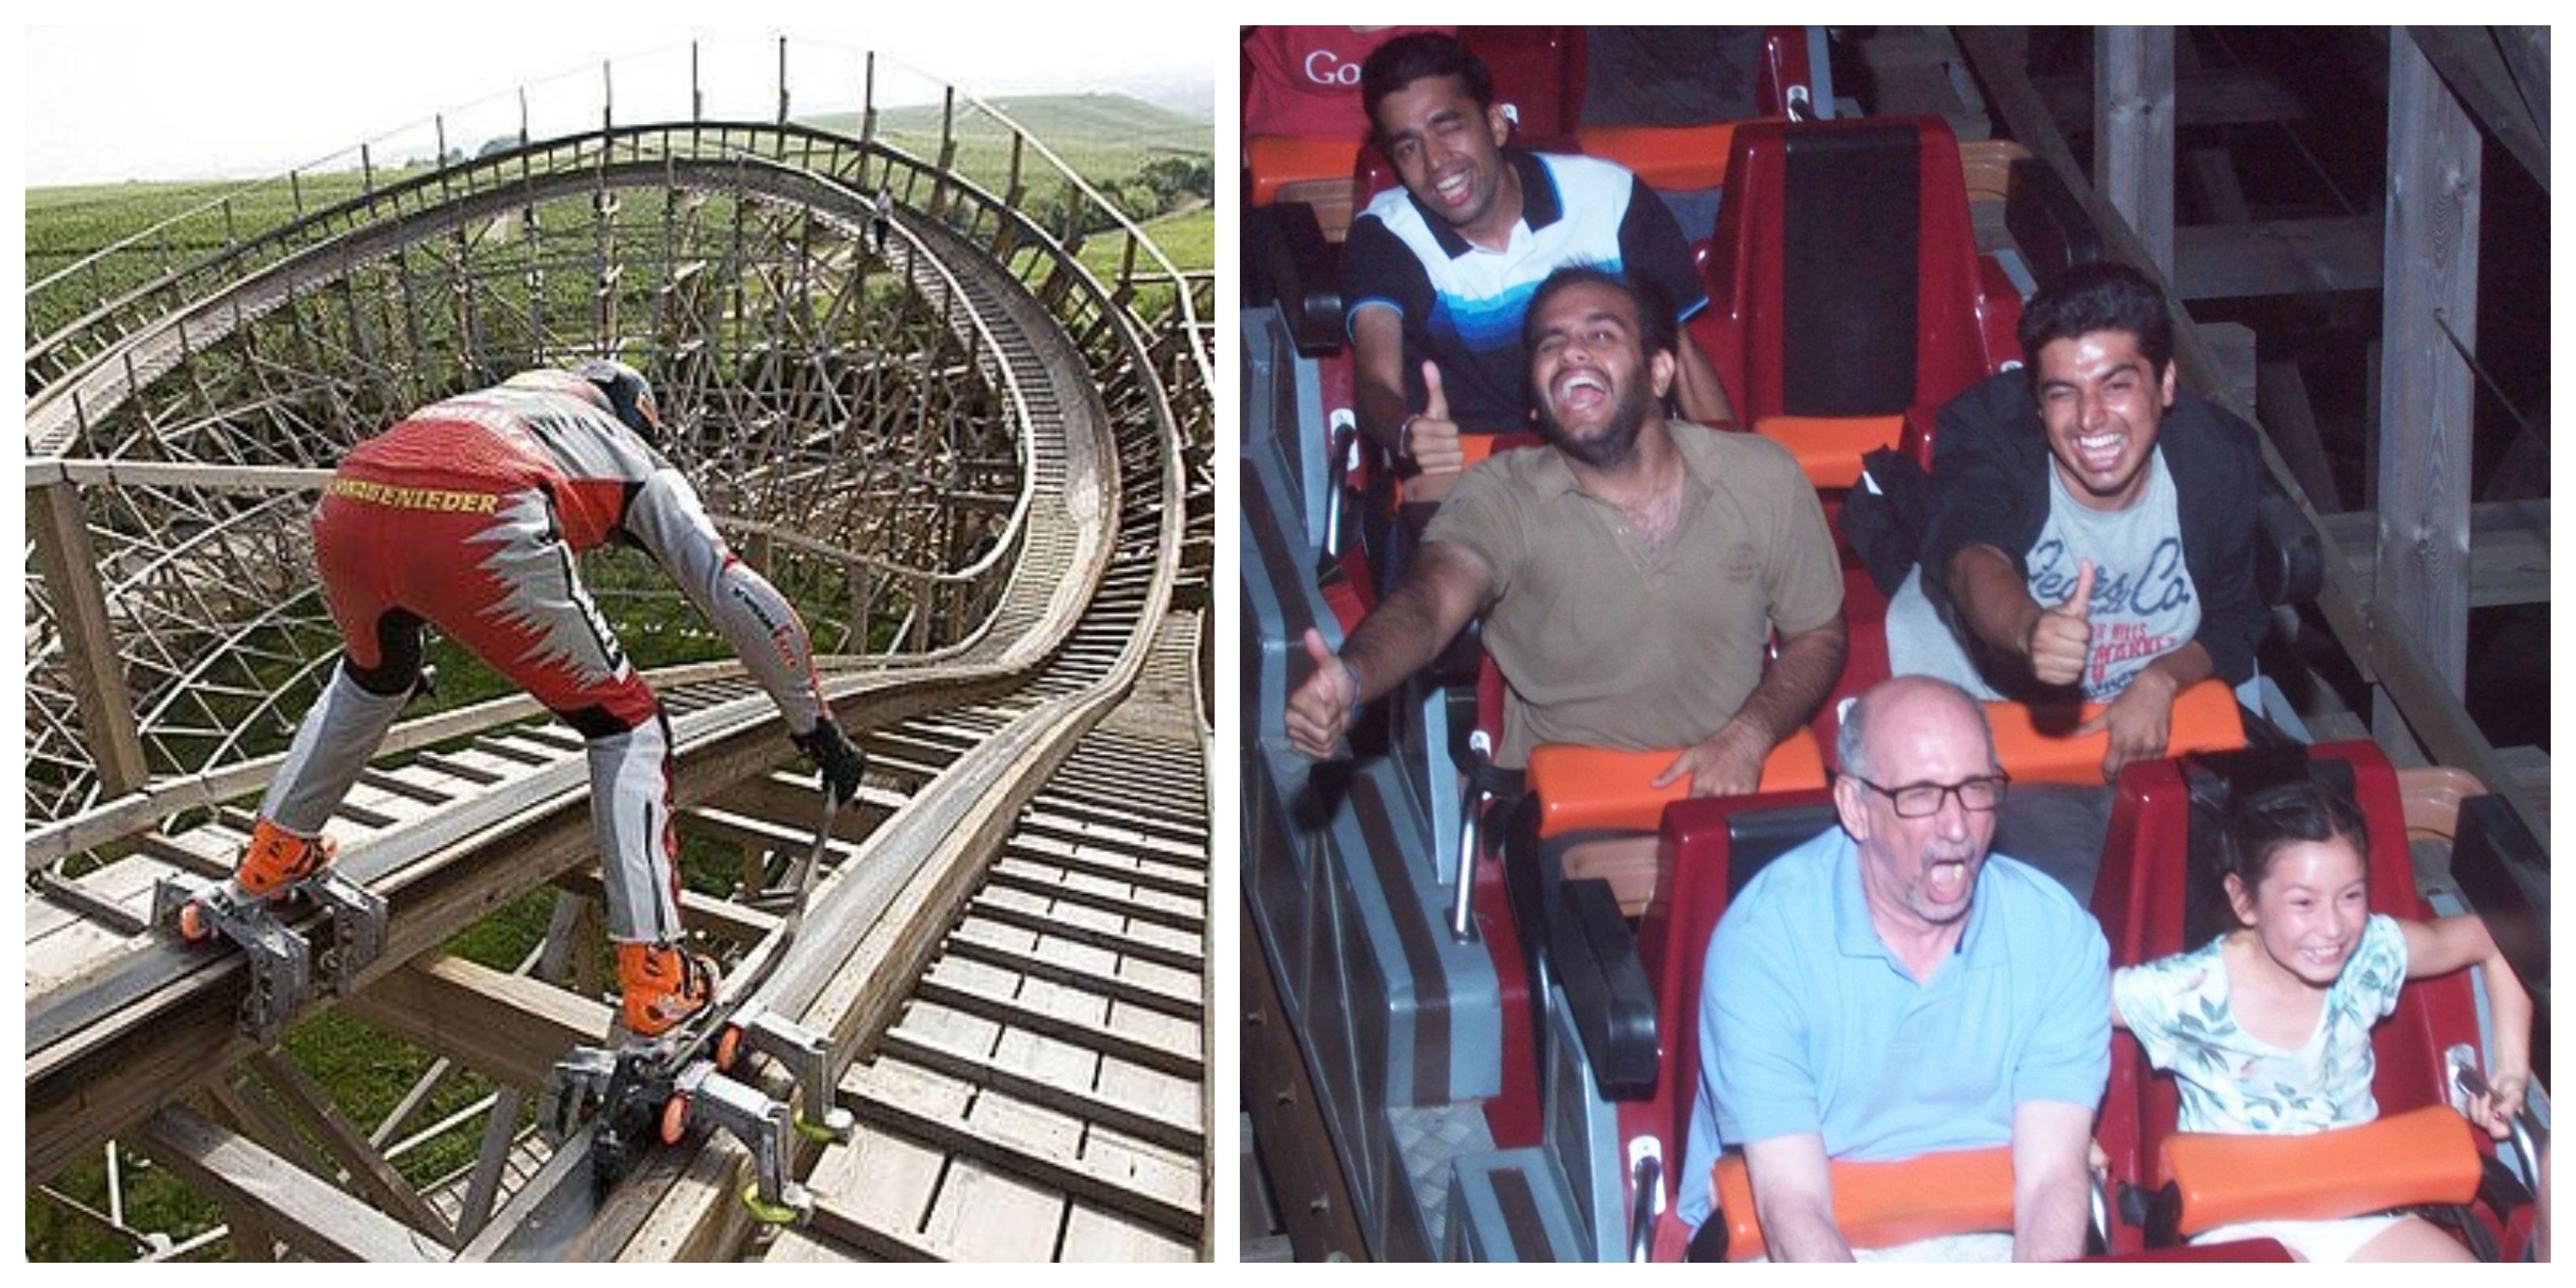 20 Weird U.S. Roller Coasters That Make Our Stomach Drop